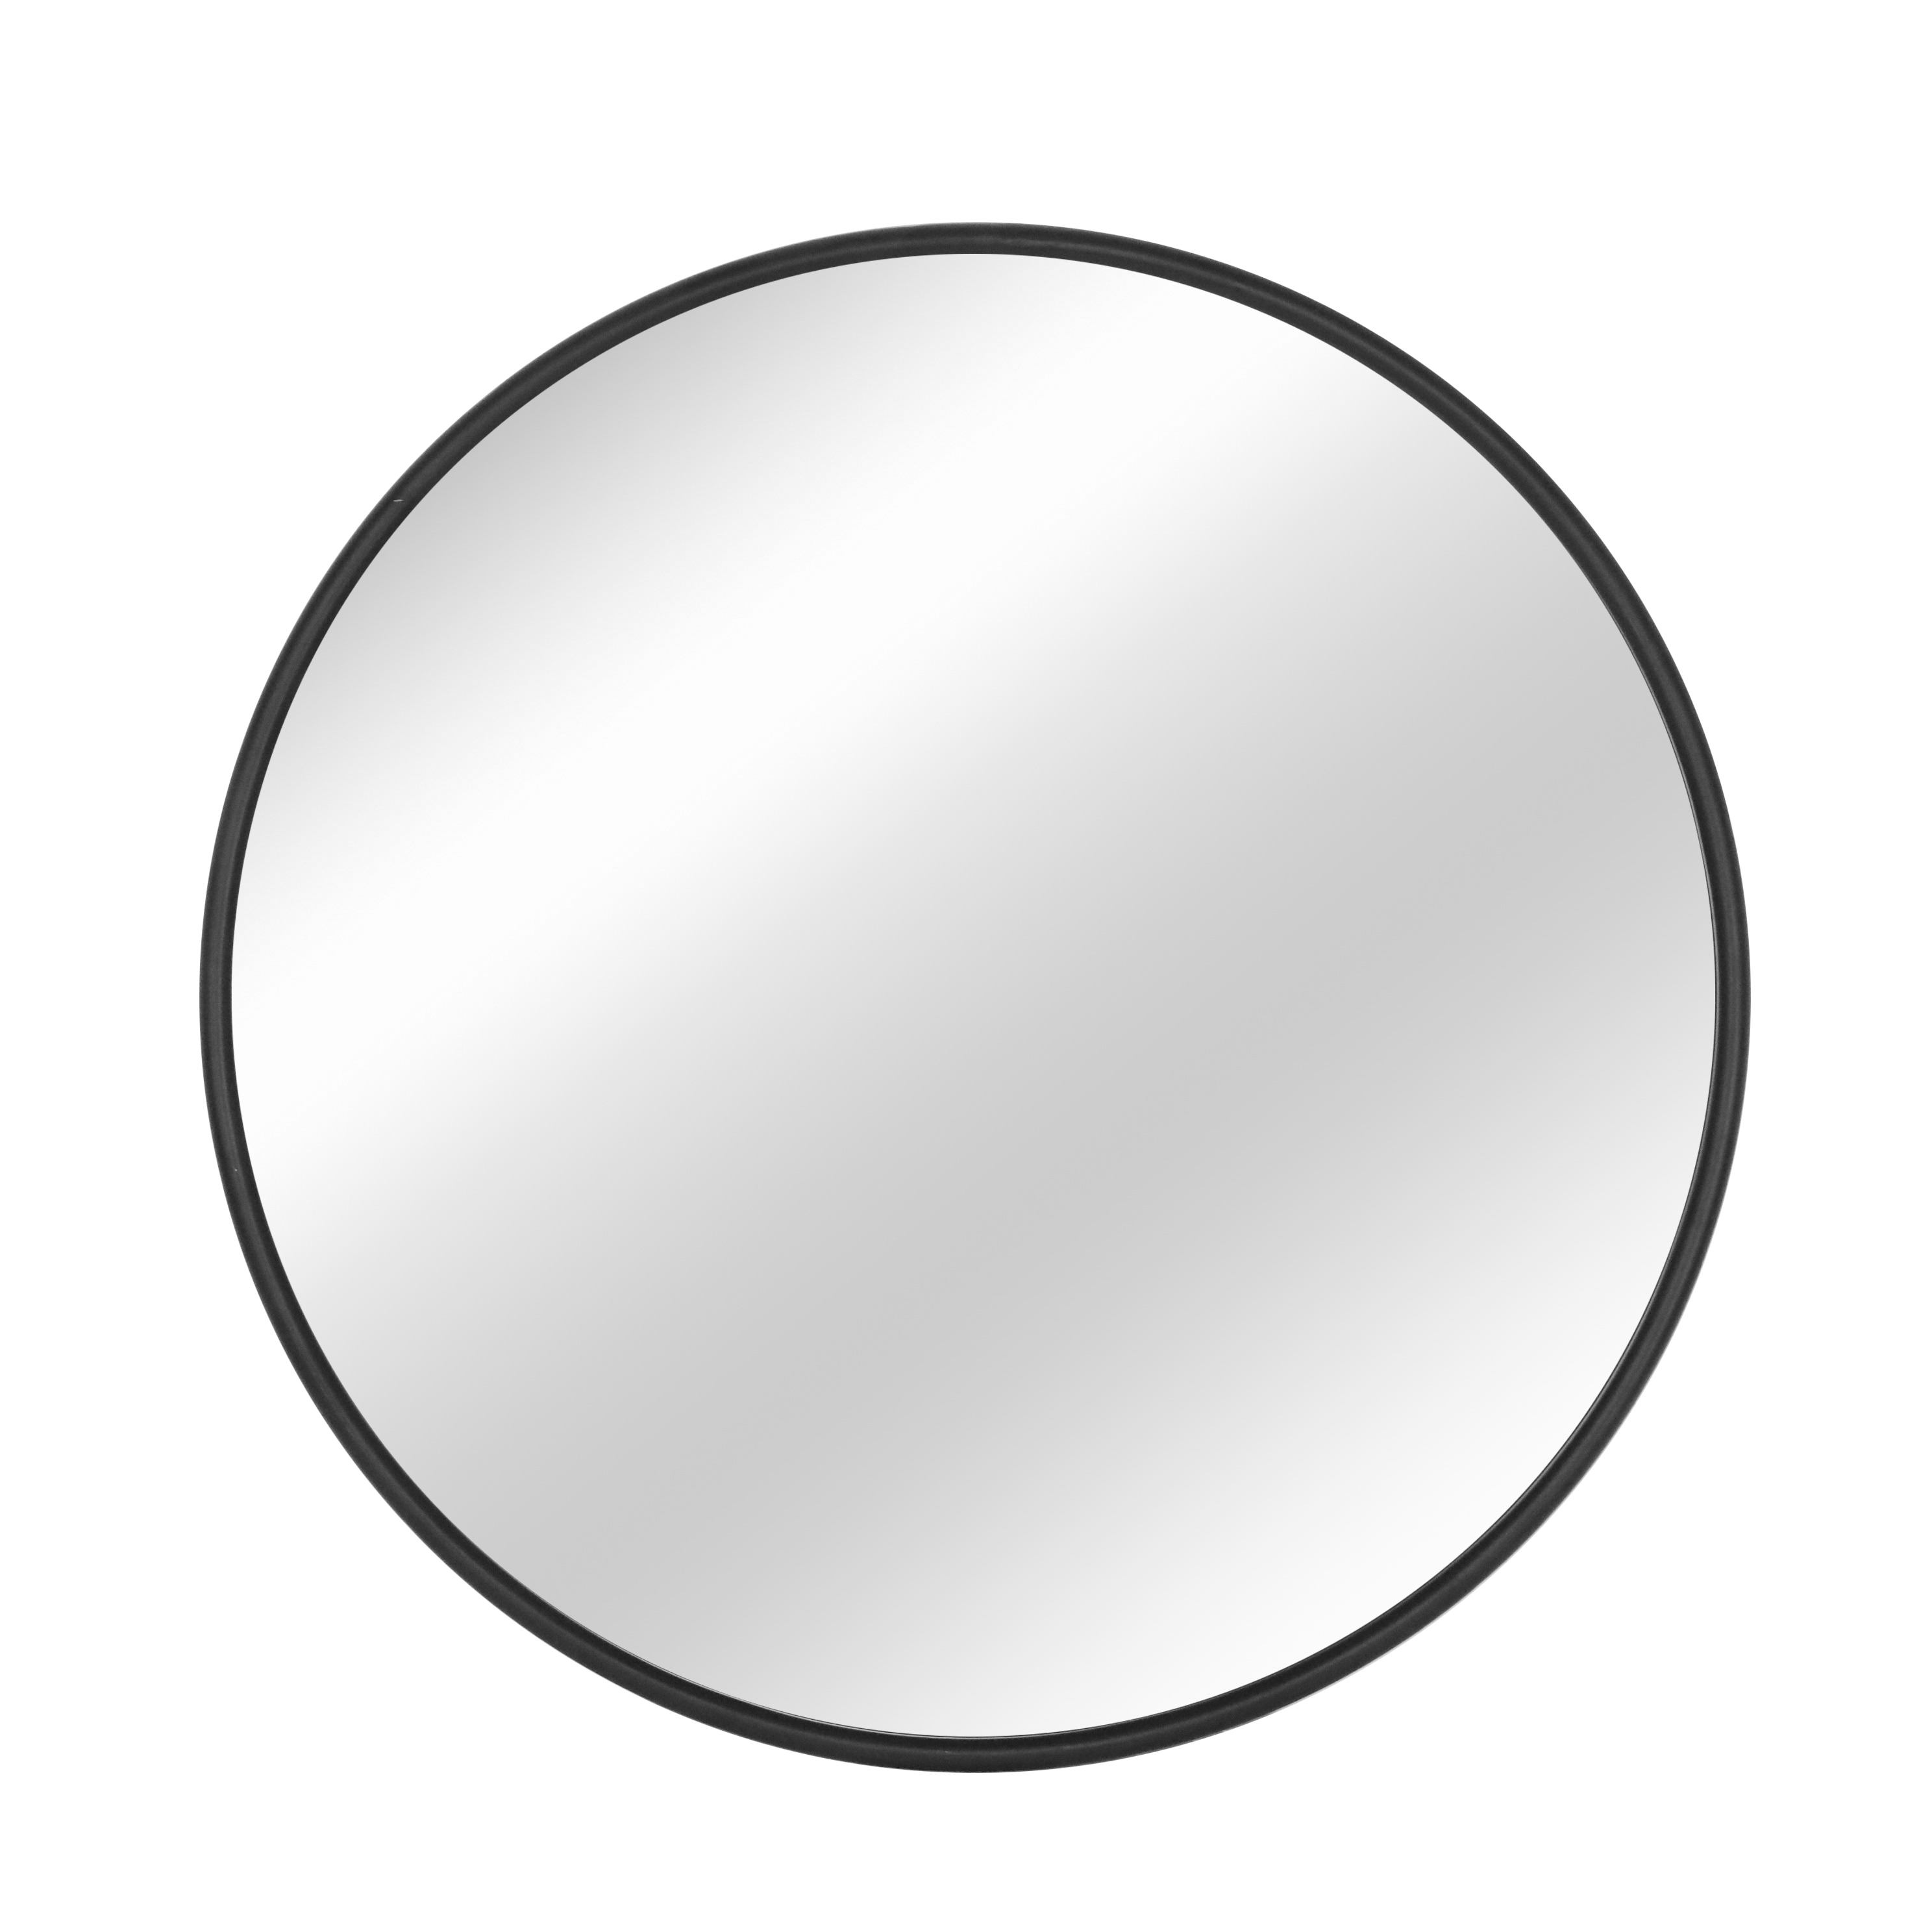 Doingart Wall Mirror Make Up Round Mirror Vanity Mirror Circle Wall Mirror W Metal Silver Frame For Bedroom Bathroom Entry Dining Room Living Room 31 5in Silver Walmart Com Walmart Com